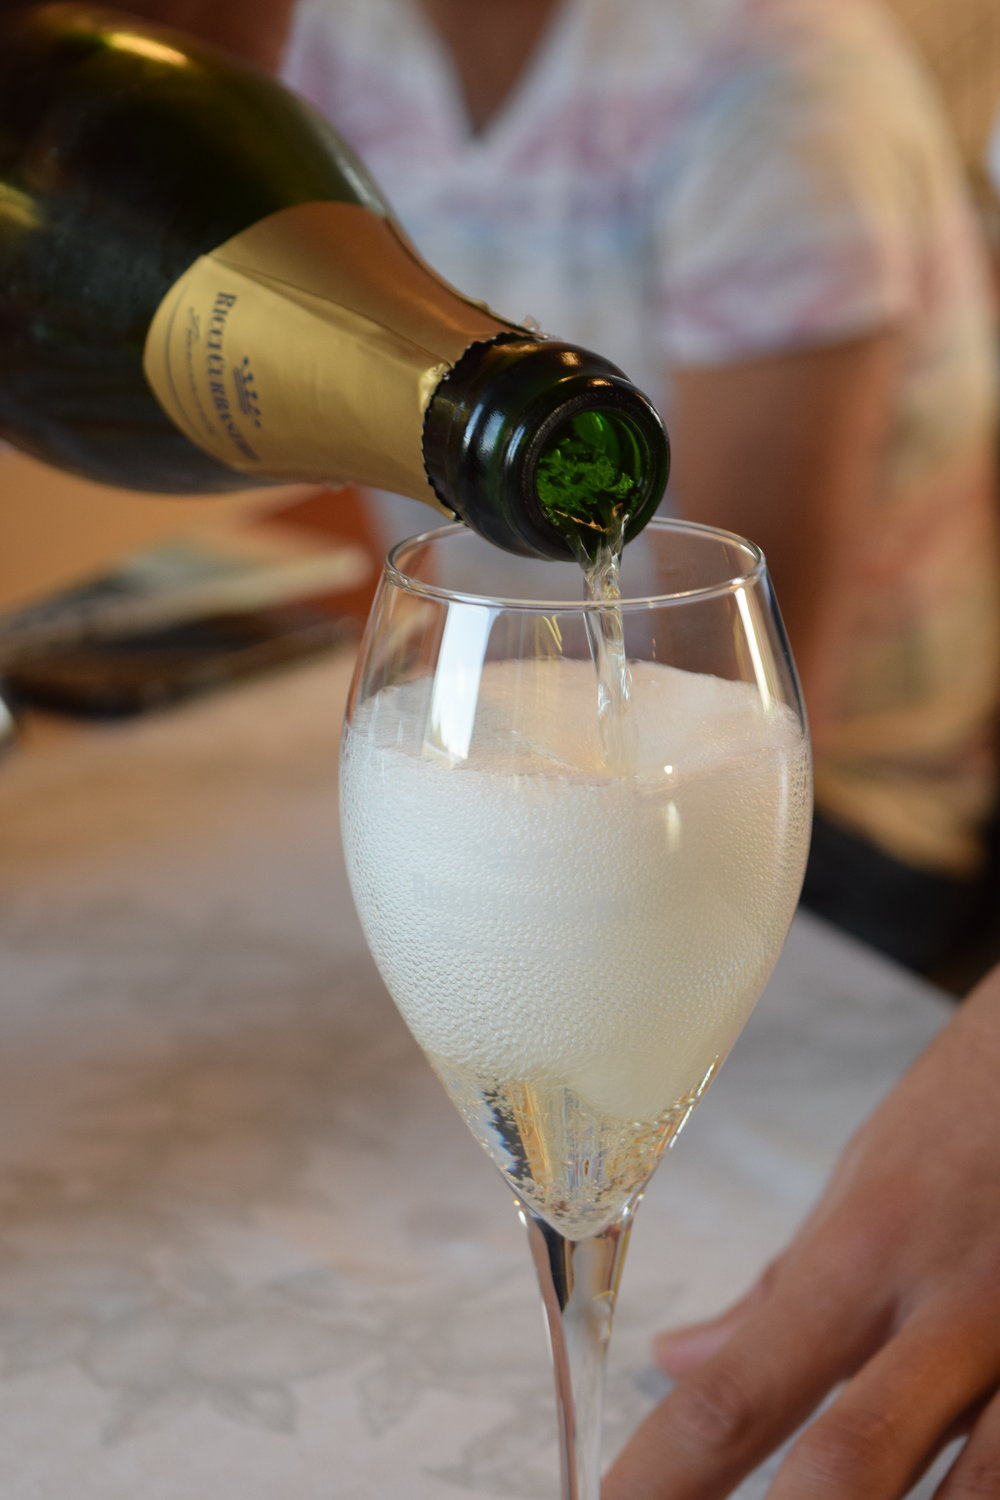 pouring Franciacorta, photo by Becca Yeamans Irwin